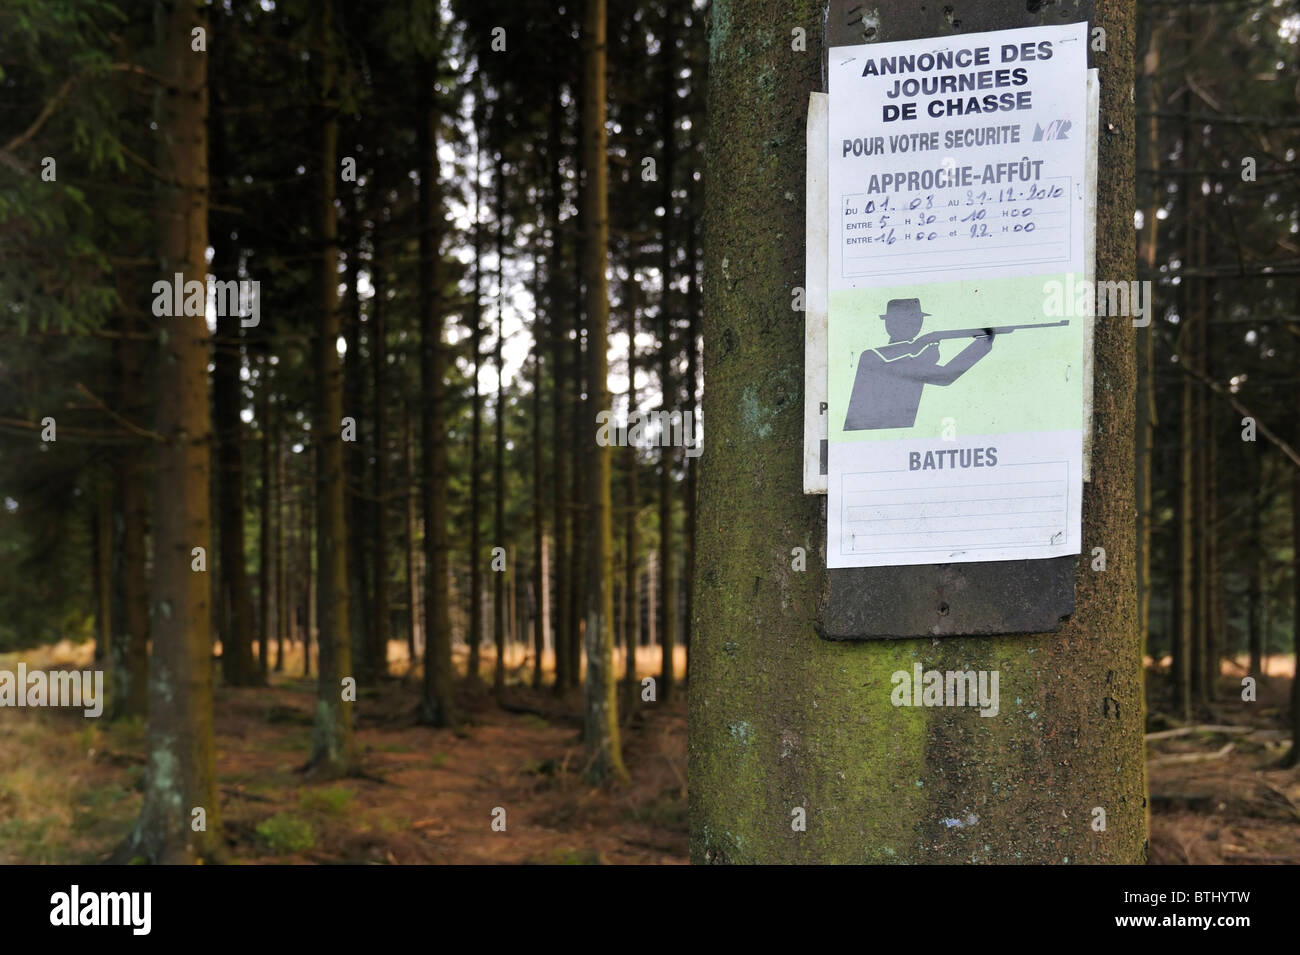 Announcement of hunting season in forest, Ardennes, Belgium - Stock Image